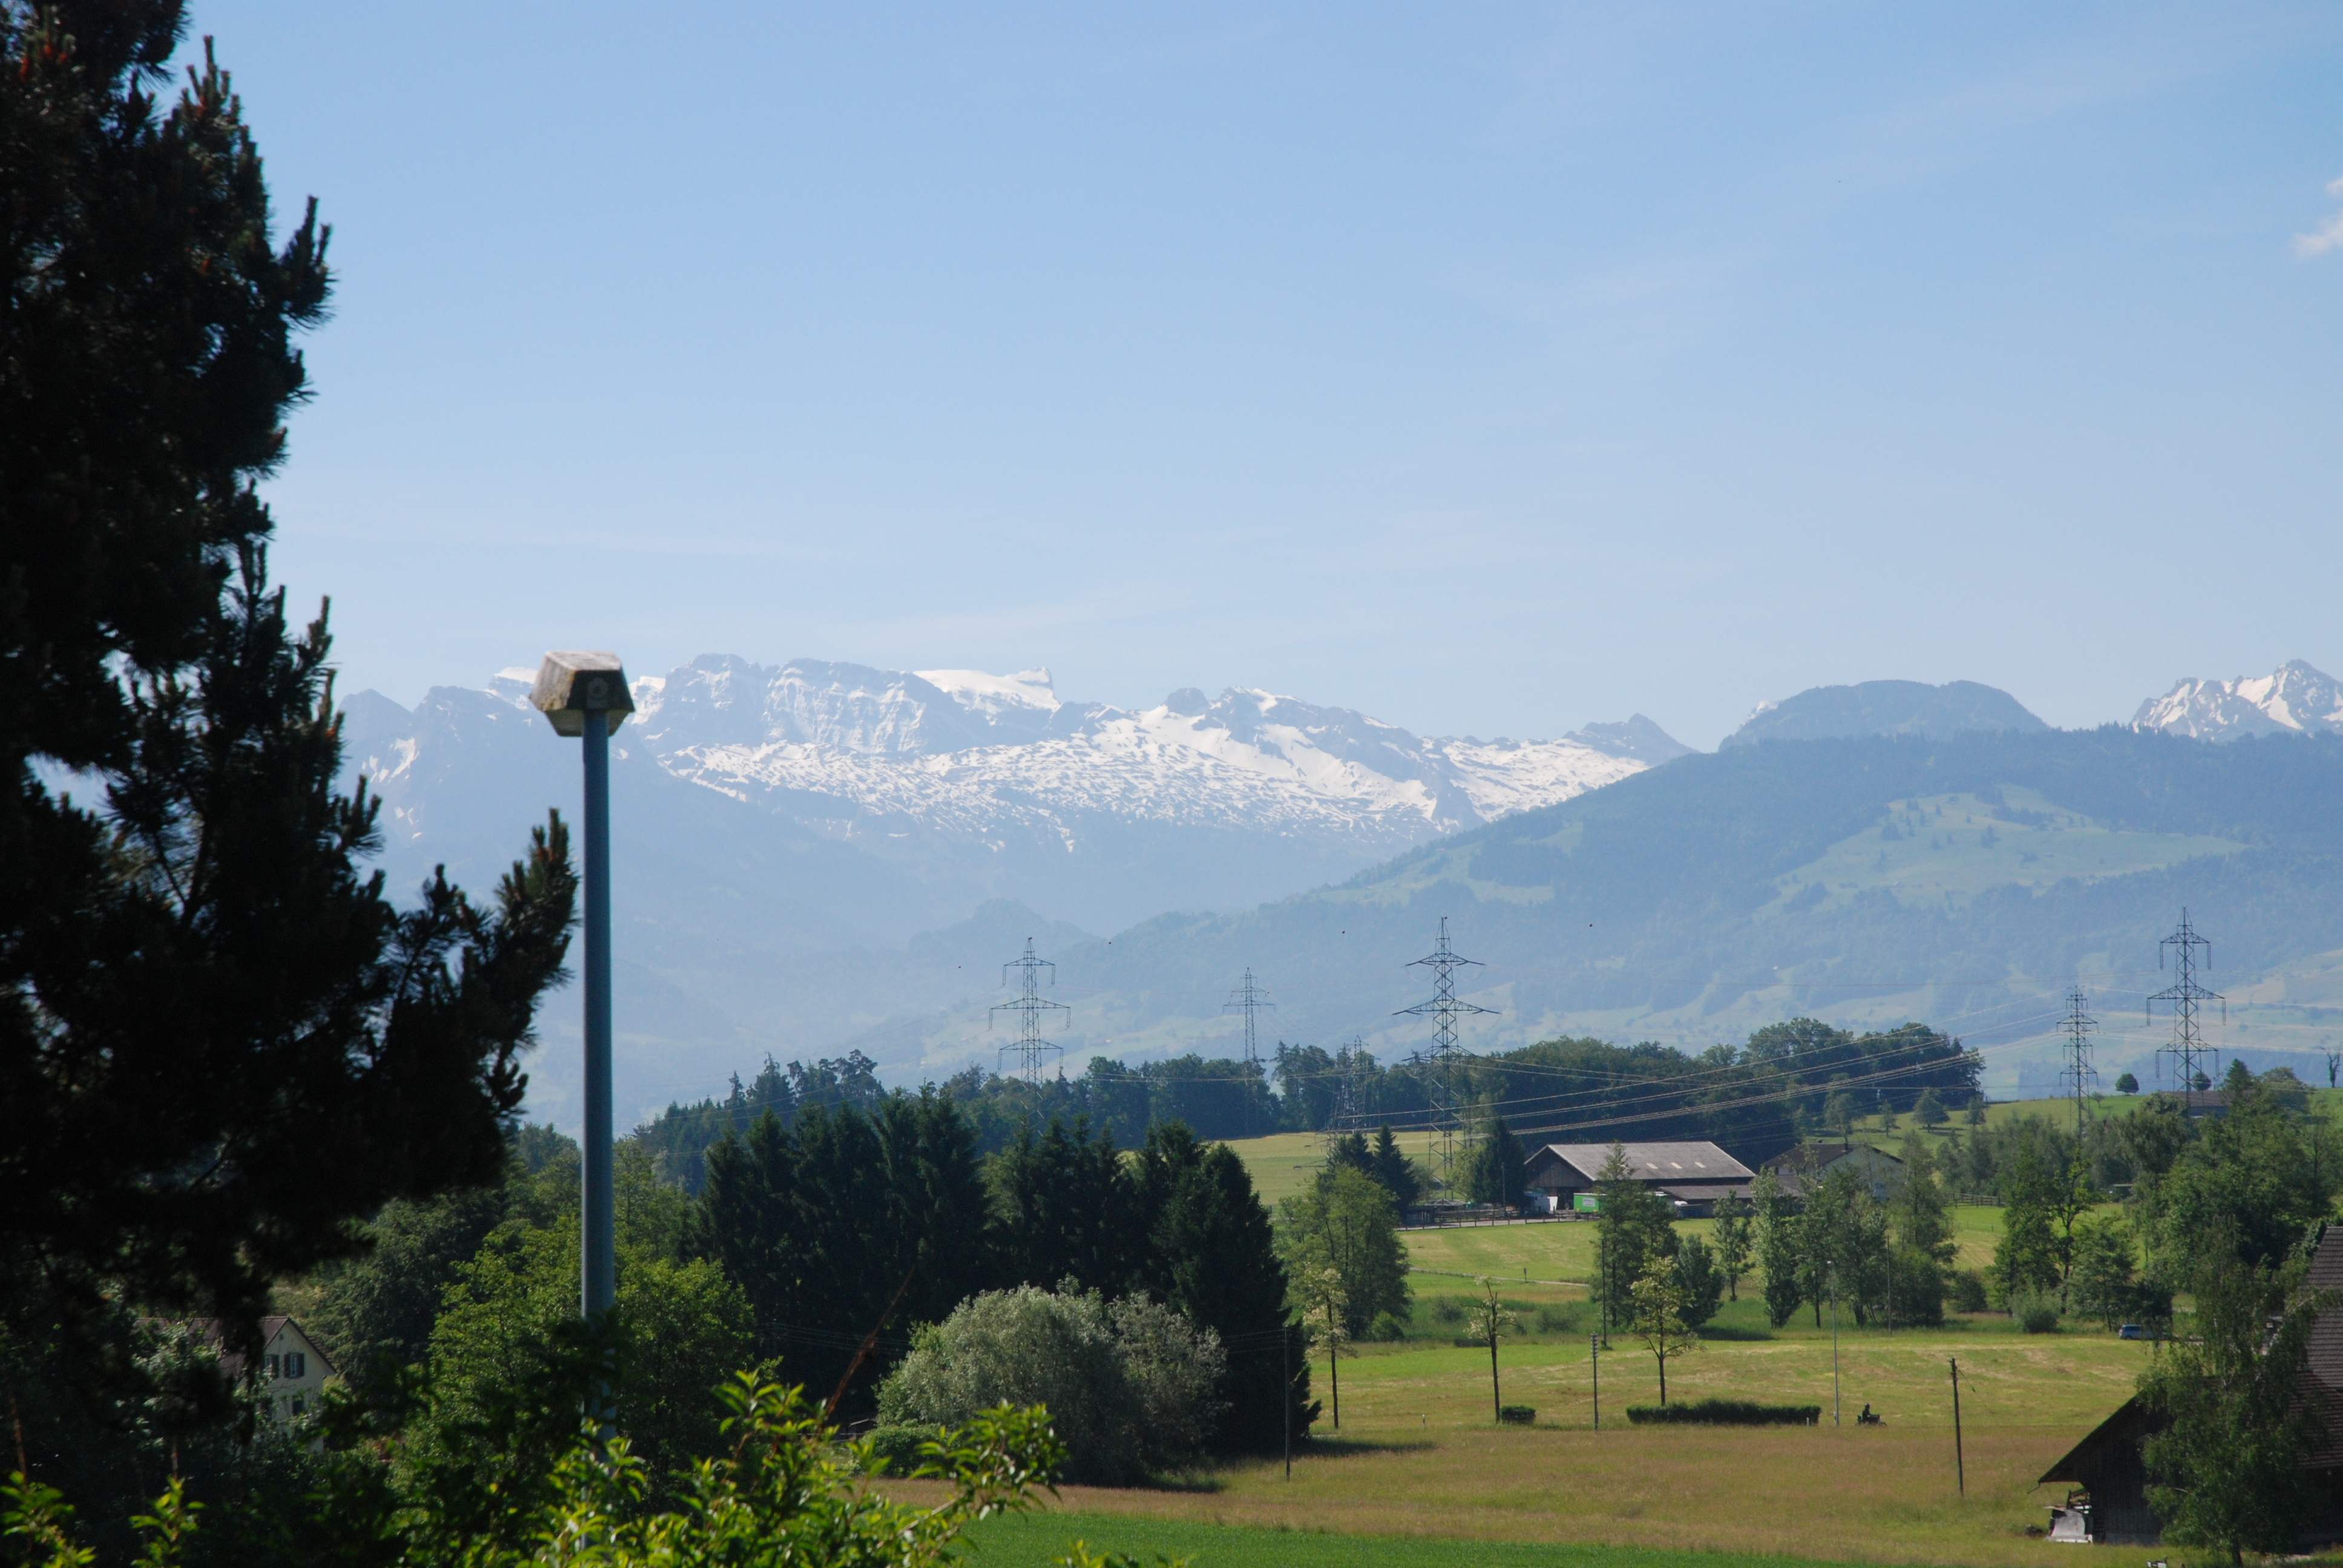 This is aunty Ditha's backyard. This was the sight we wake up to every morning while at Zurich.